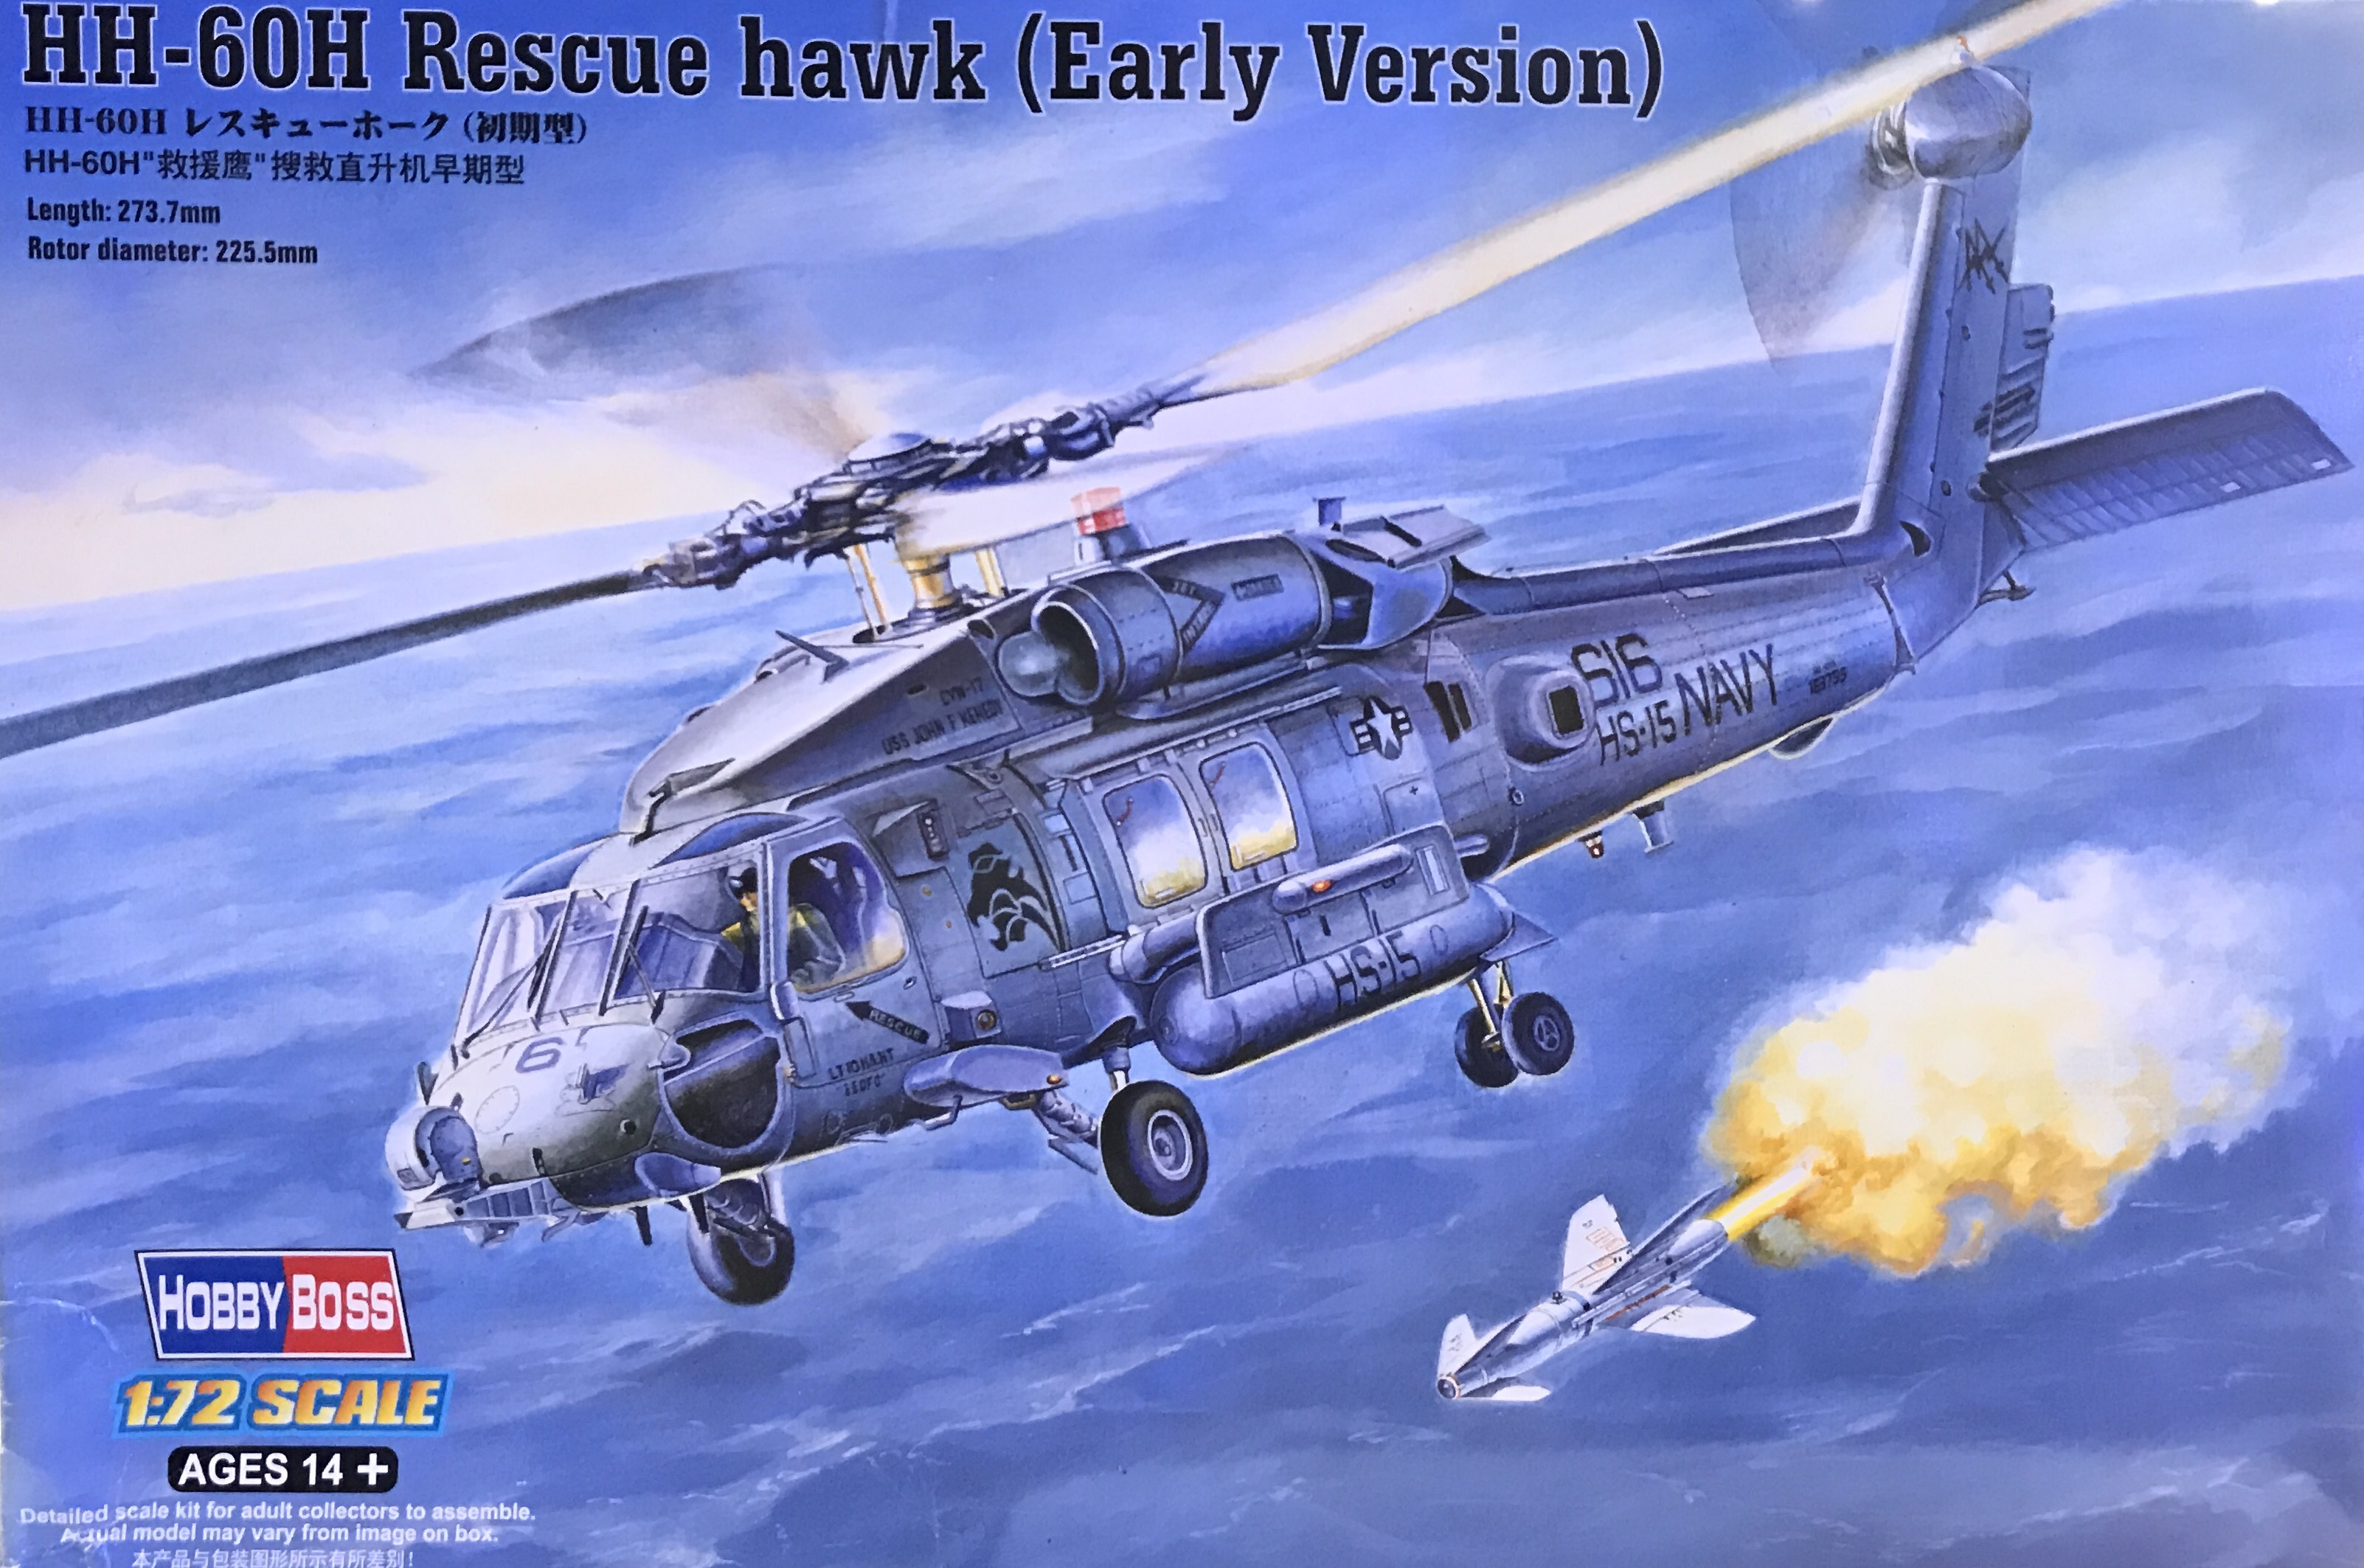 1/72 HH-60H Rescue hawk (Early Version) [Hobby Boss]